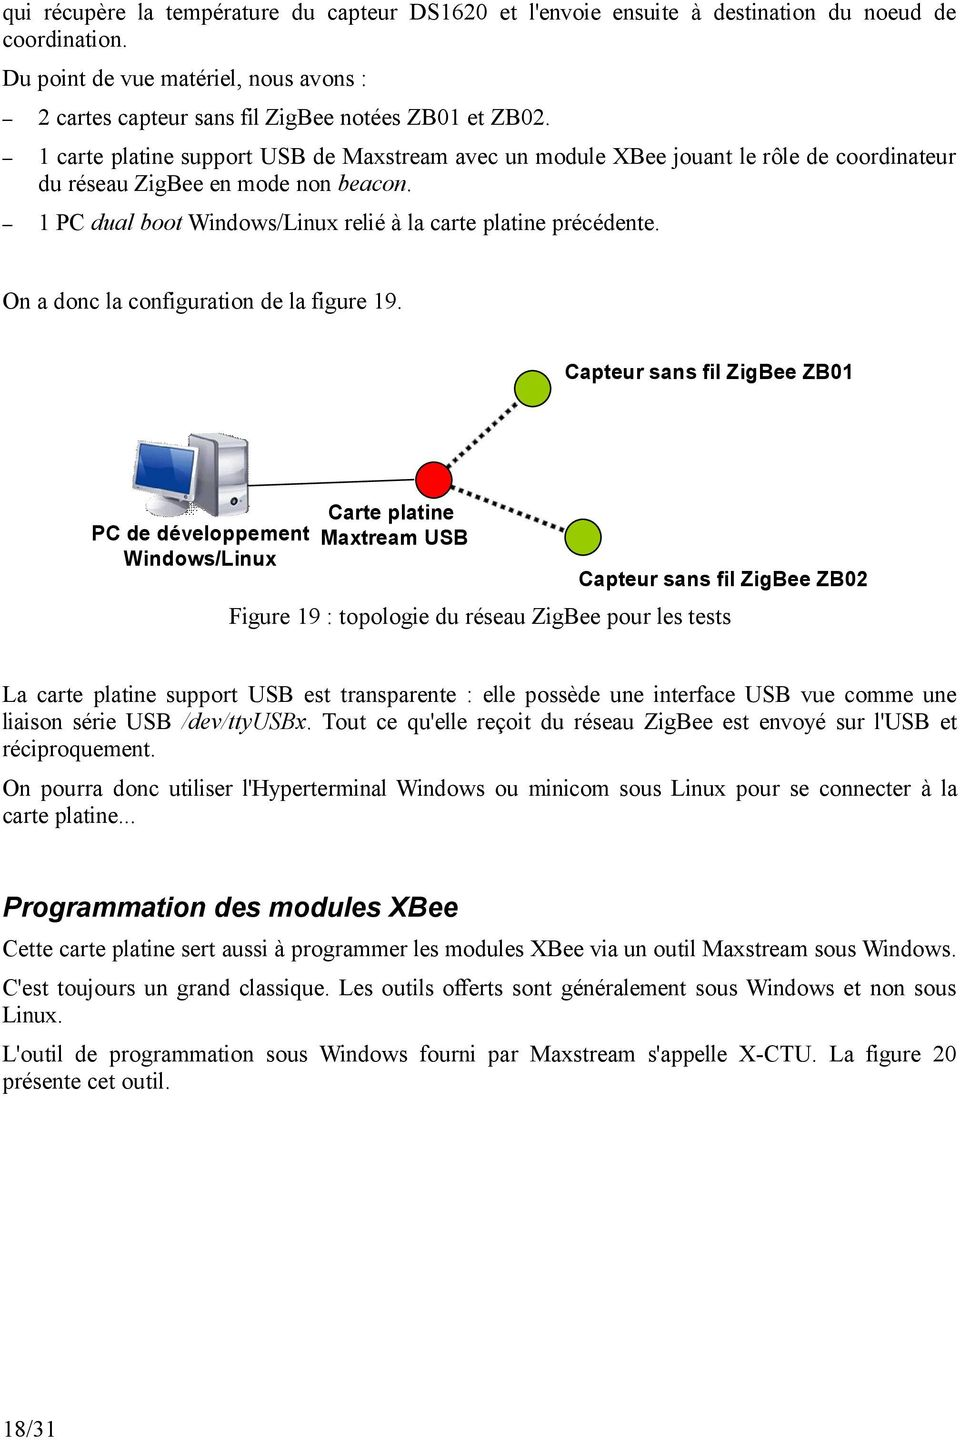 On a donc la configuration de la figure 19.